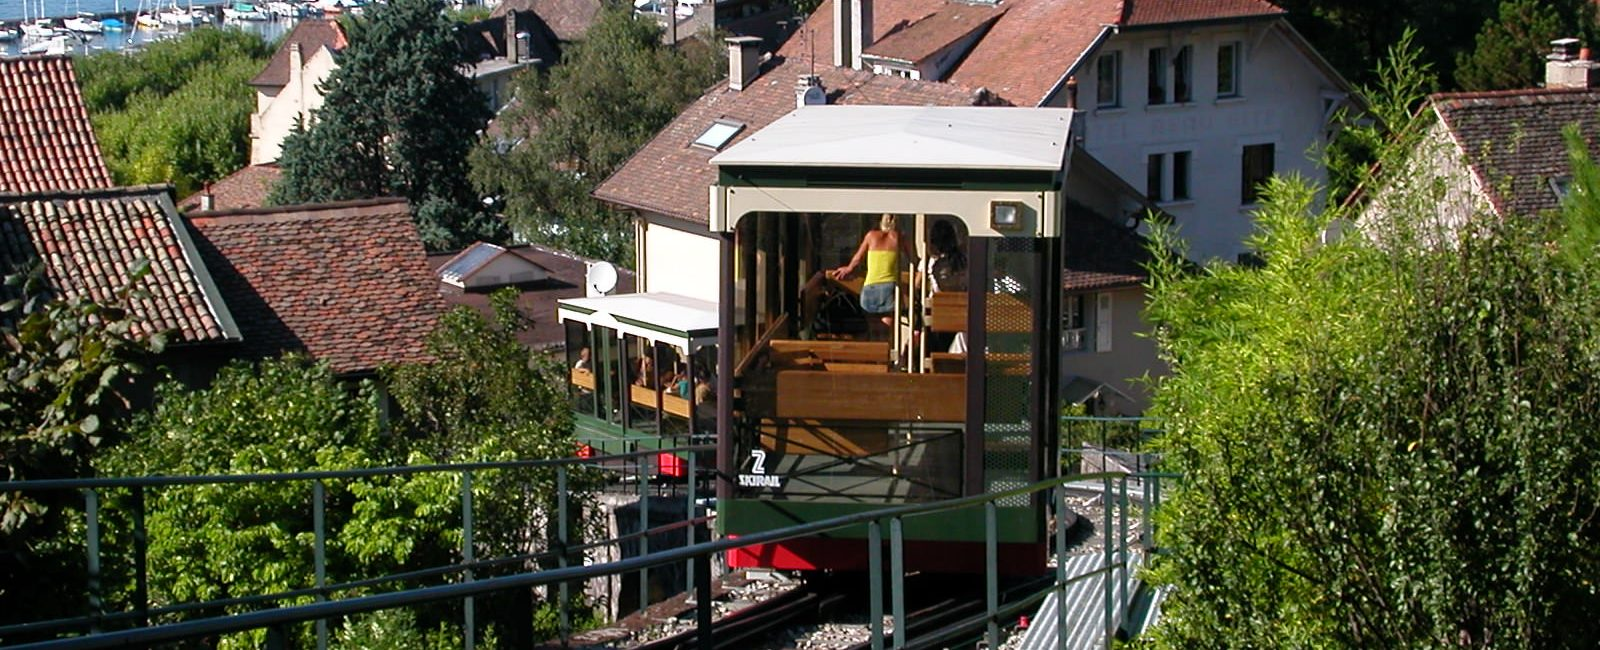 Thonon-les-Bains_funiculaire